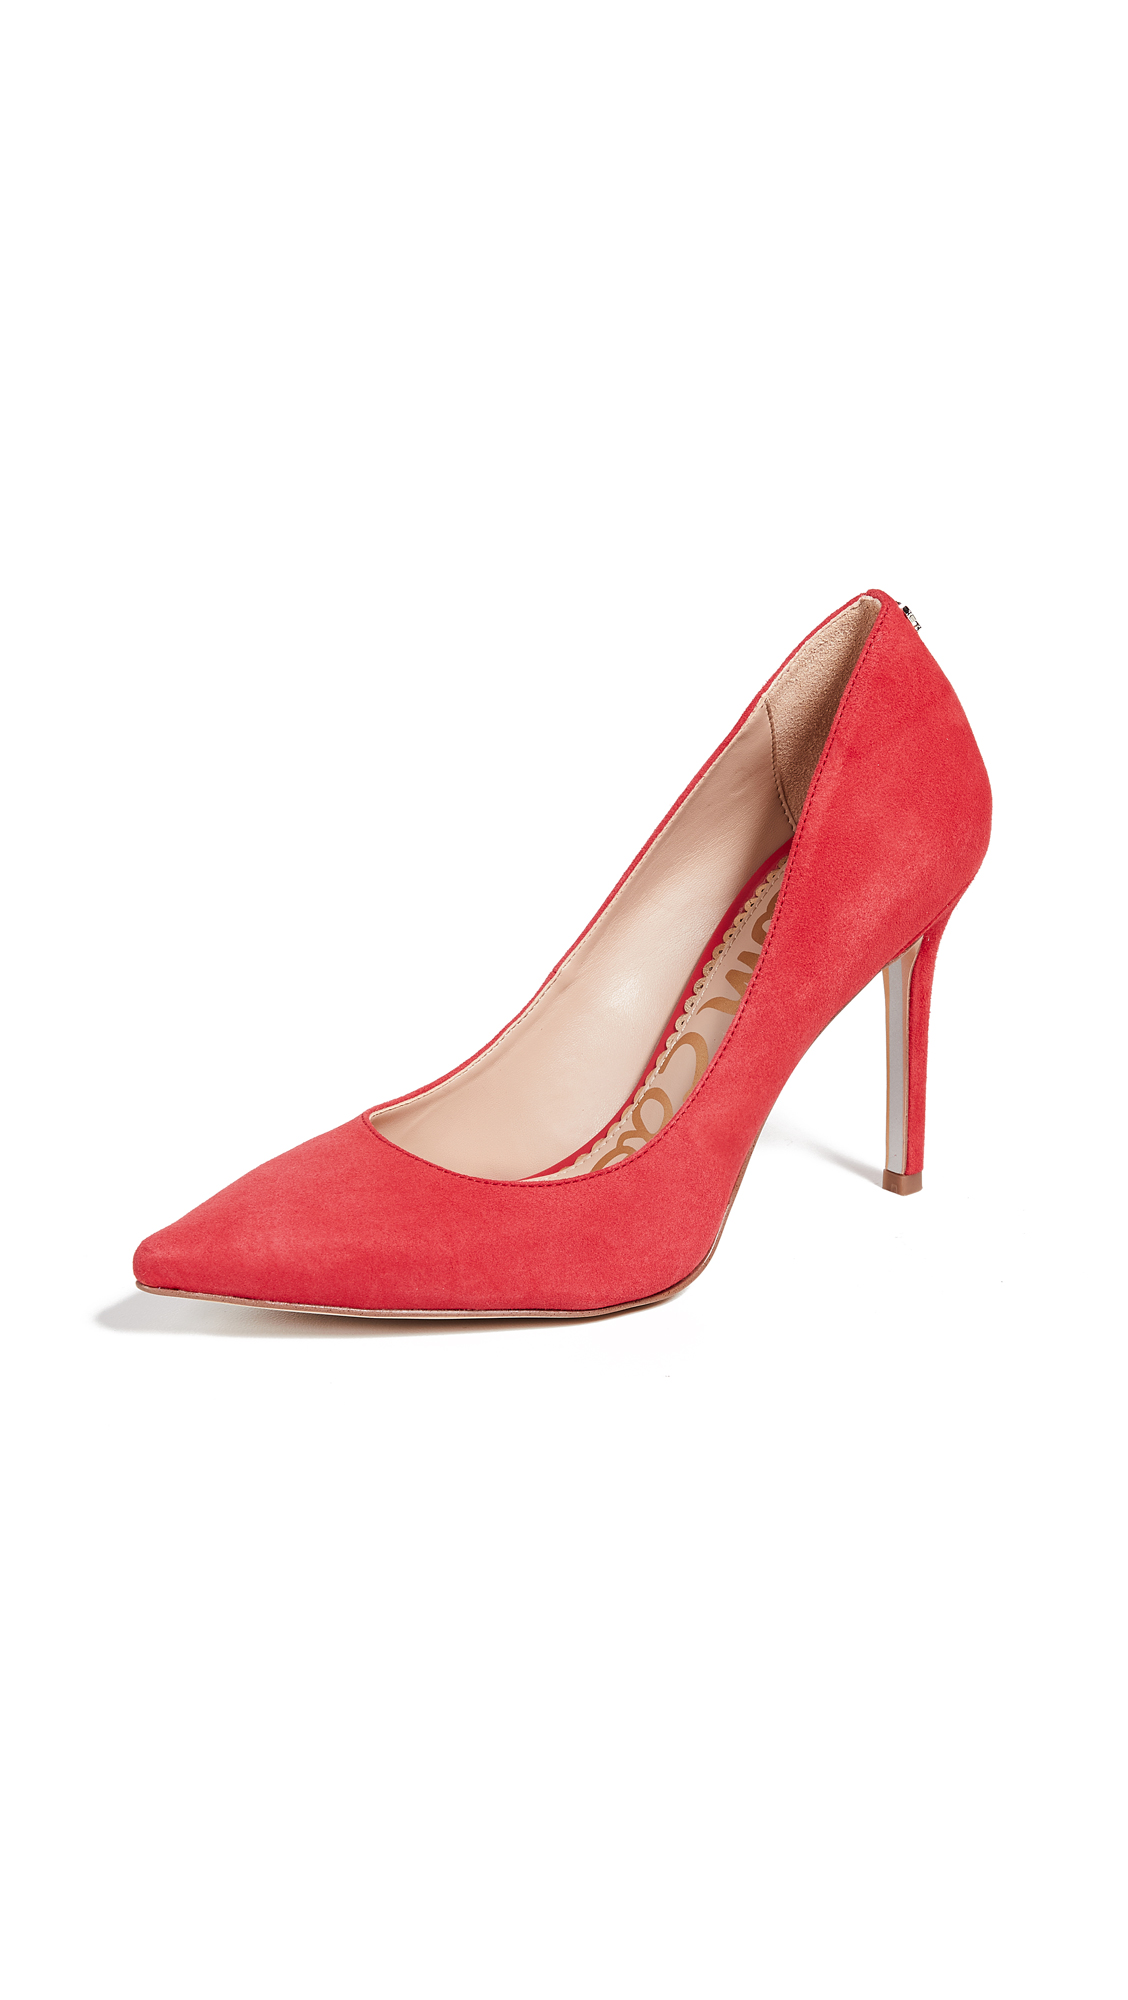 Sam Edelman Hazel Pumps - Coral Punch